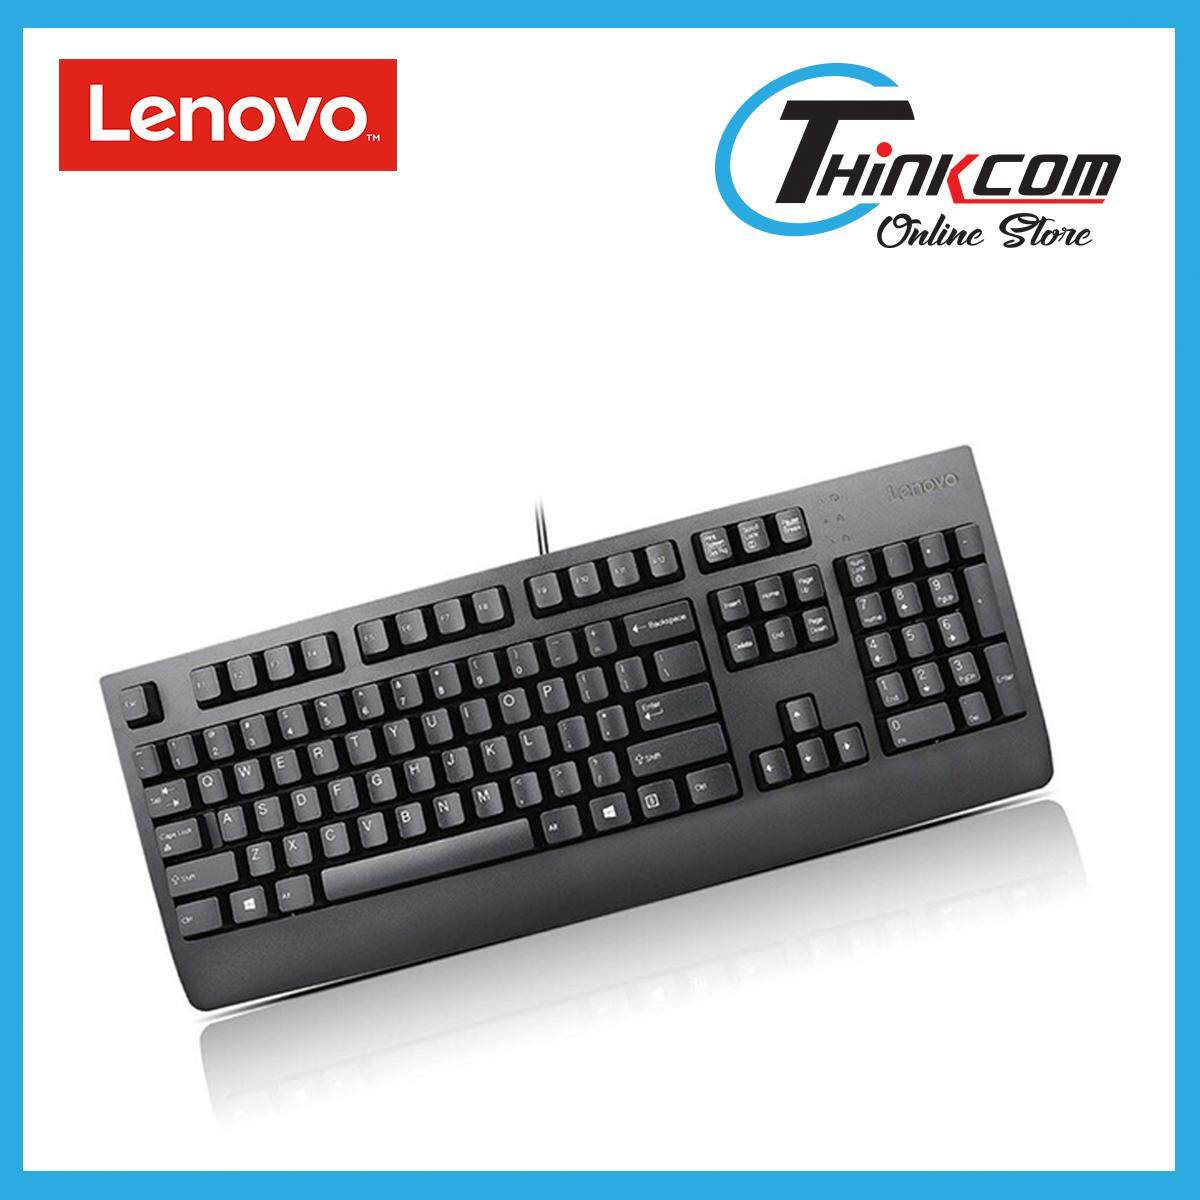 Lenovo Preferred Pro II USB Keyboard 100% Genuine Product ThinkPad